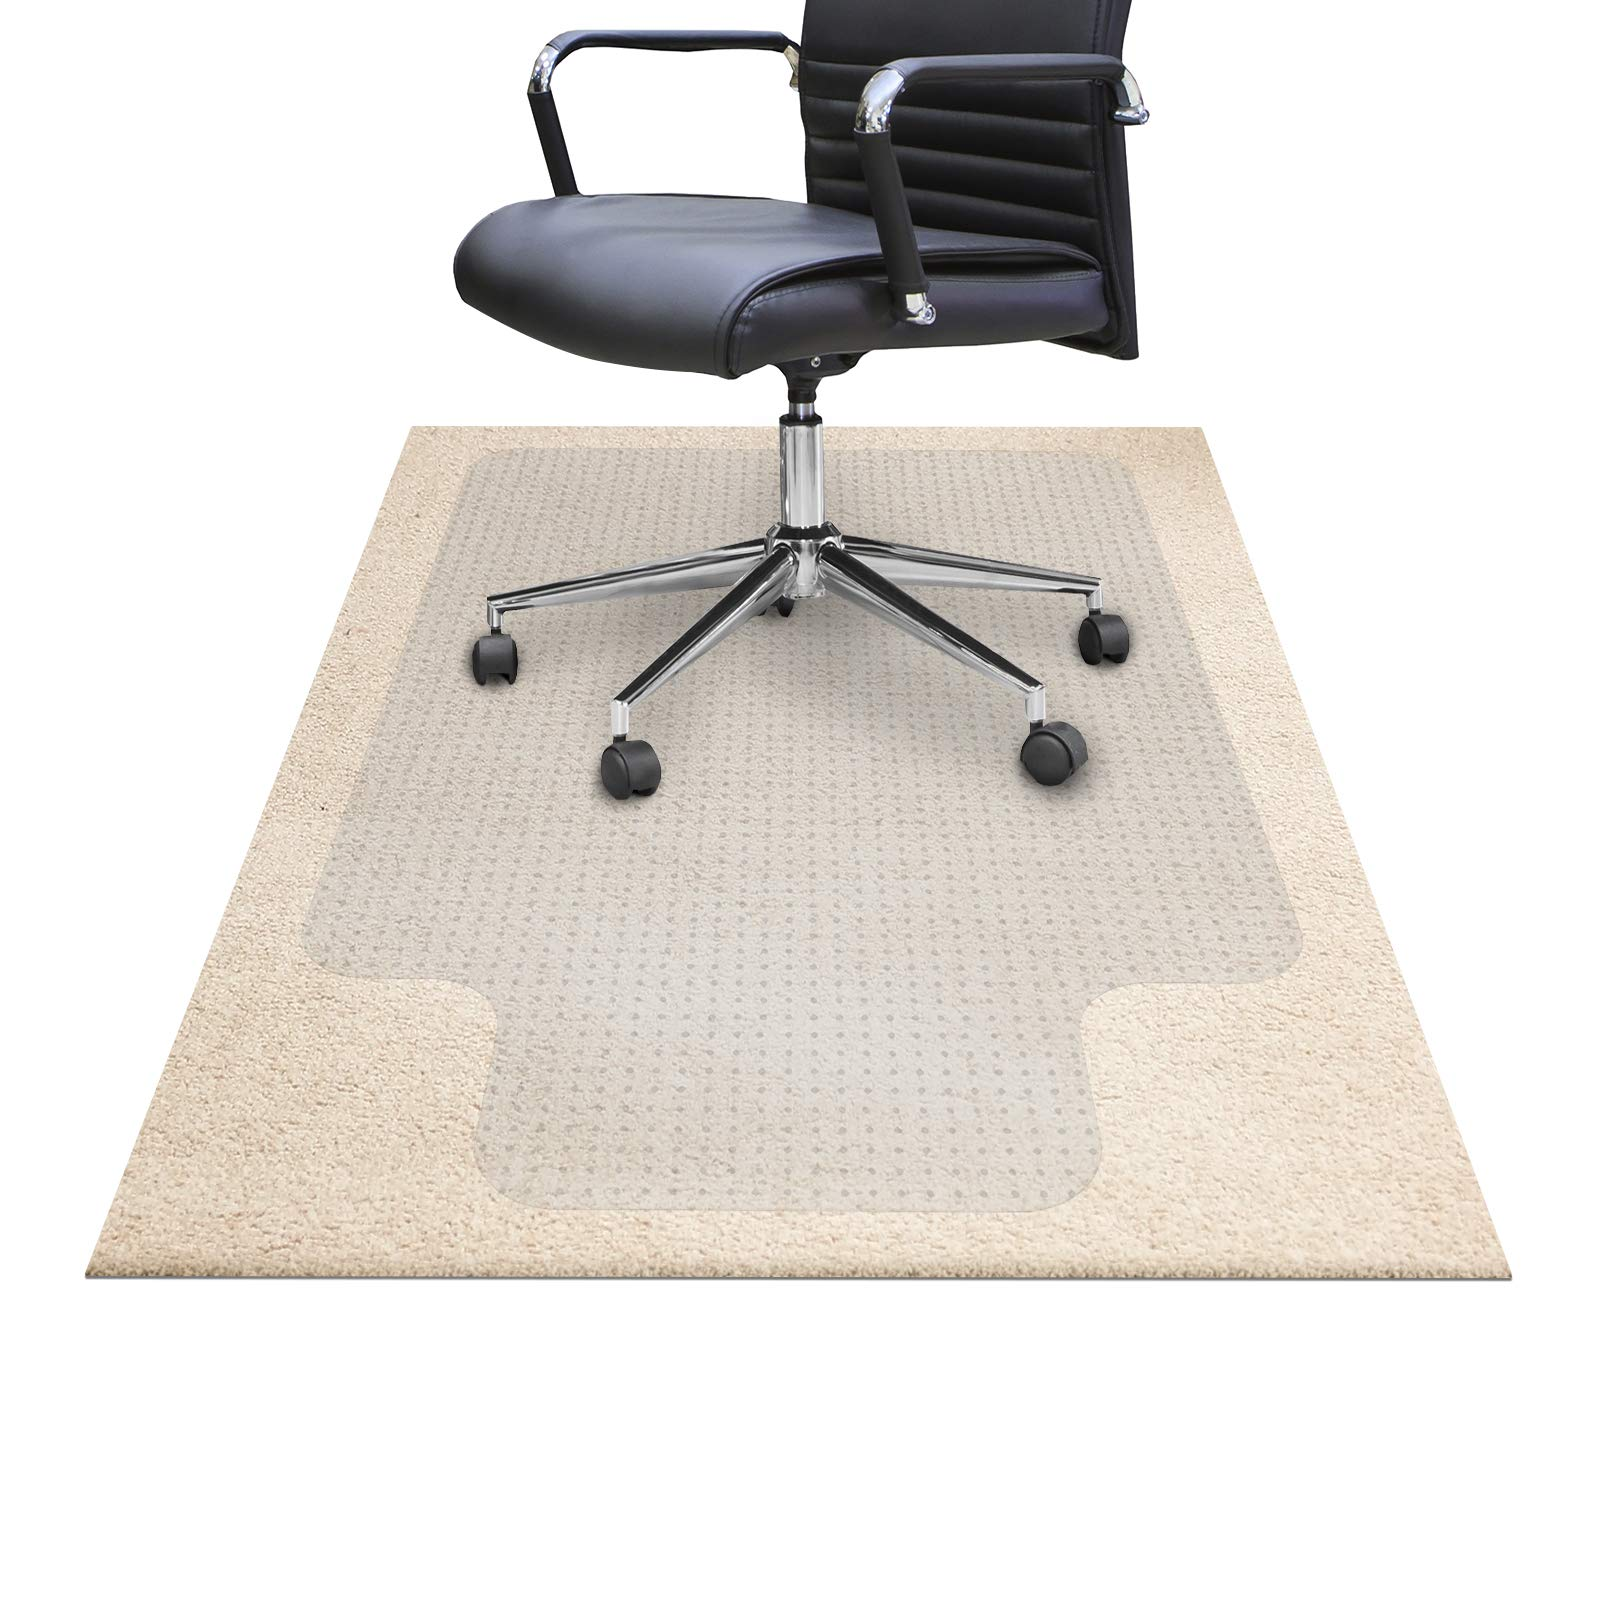 """Chair Mats for Carpeted Floors – Shatter-Proof Carpet Protector for Desk Chair   Eco-Friendly Low/Medium Pile Office Chair Mat for Carpet   Clear - 30"""" x 48"""" with Lip"""